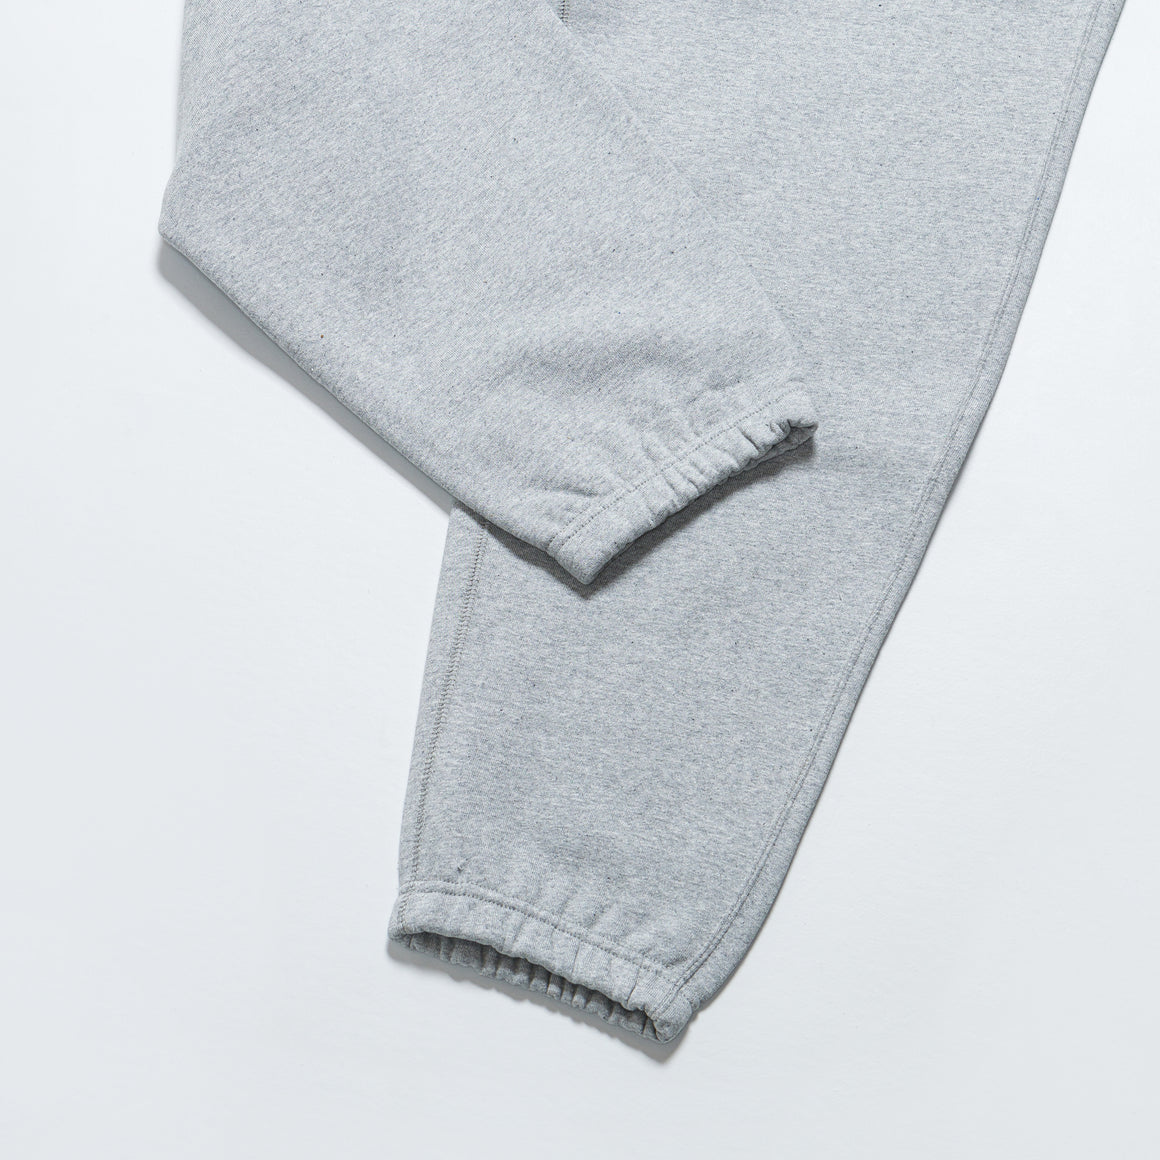 Nike - NikeLab NRG Solo Swoosh Fleece Pant - DK Grey Heather/White - Up There